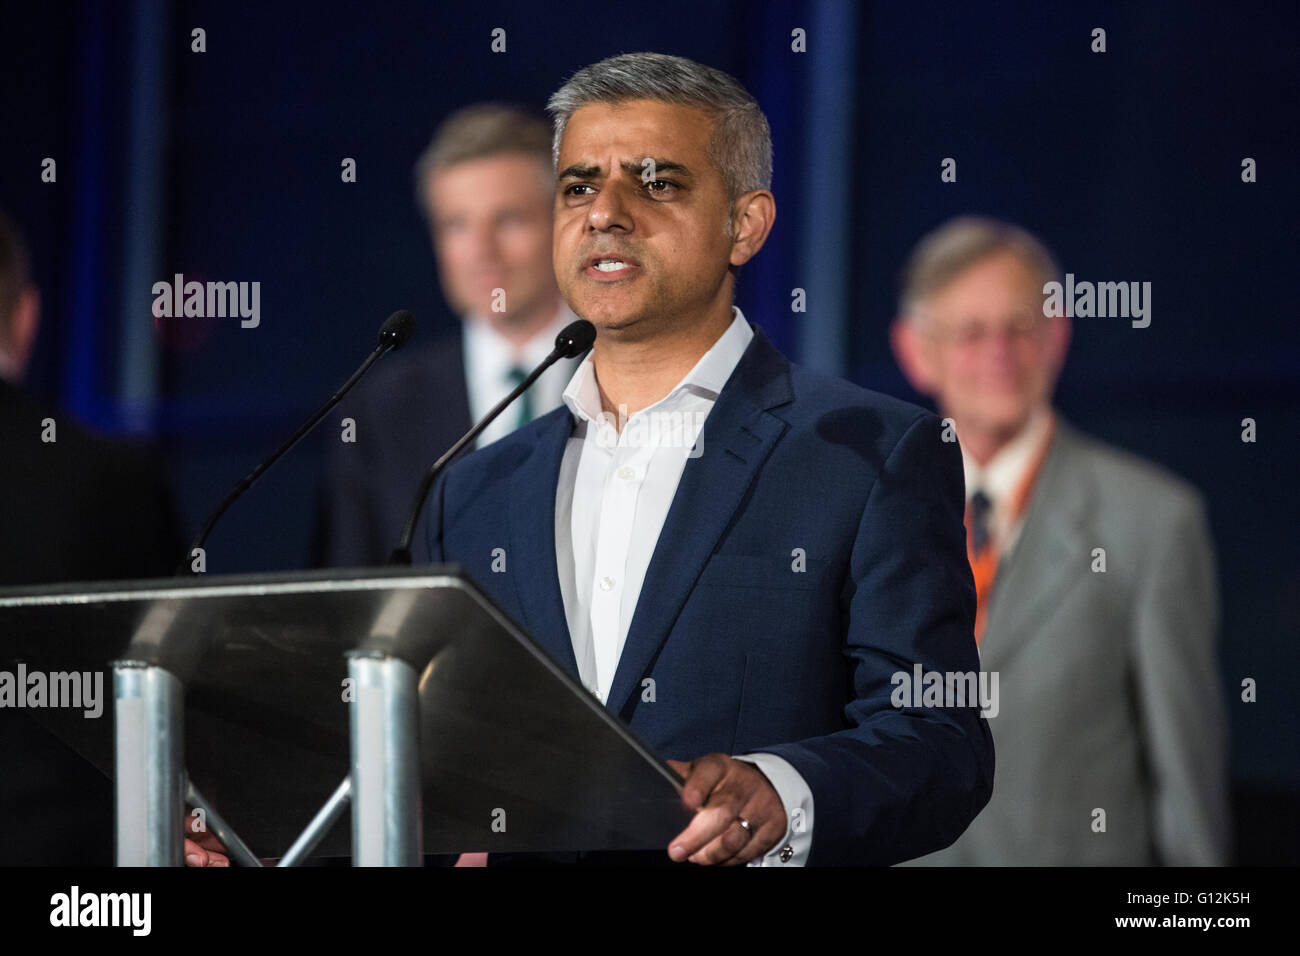 London, UK. 7th May, 2016. Sadiq Khan makes his winner's speech following the London Mayoral election declaration - Stock Image